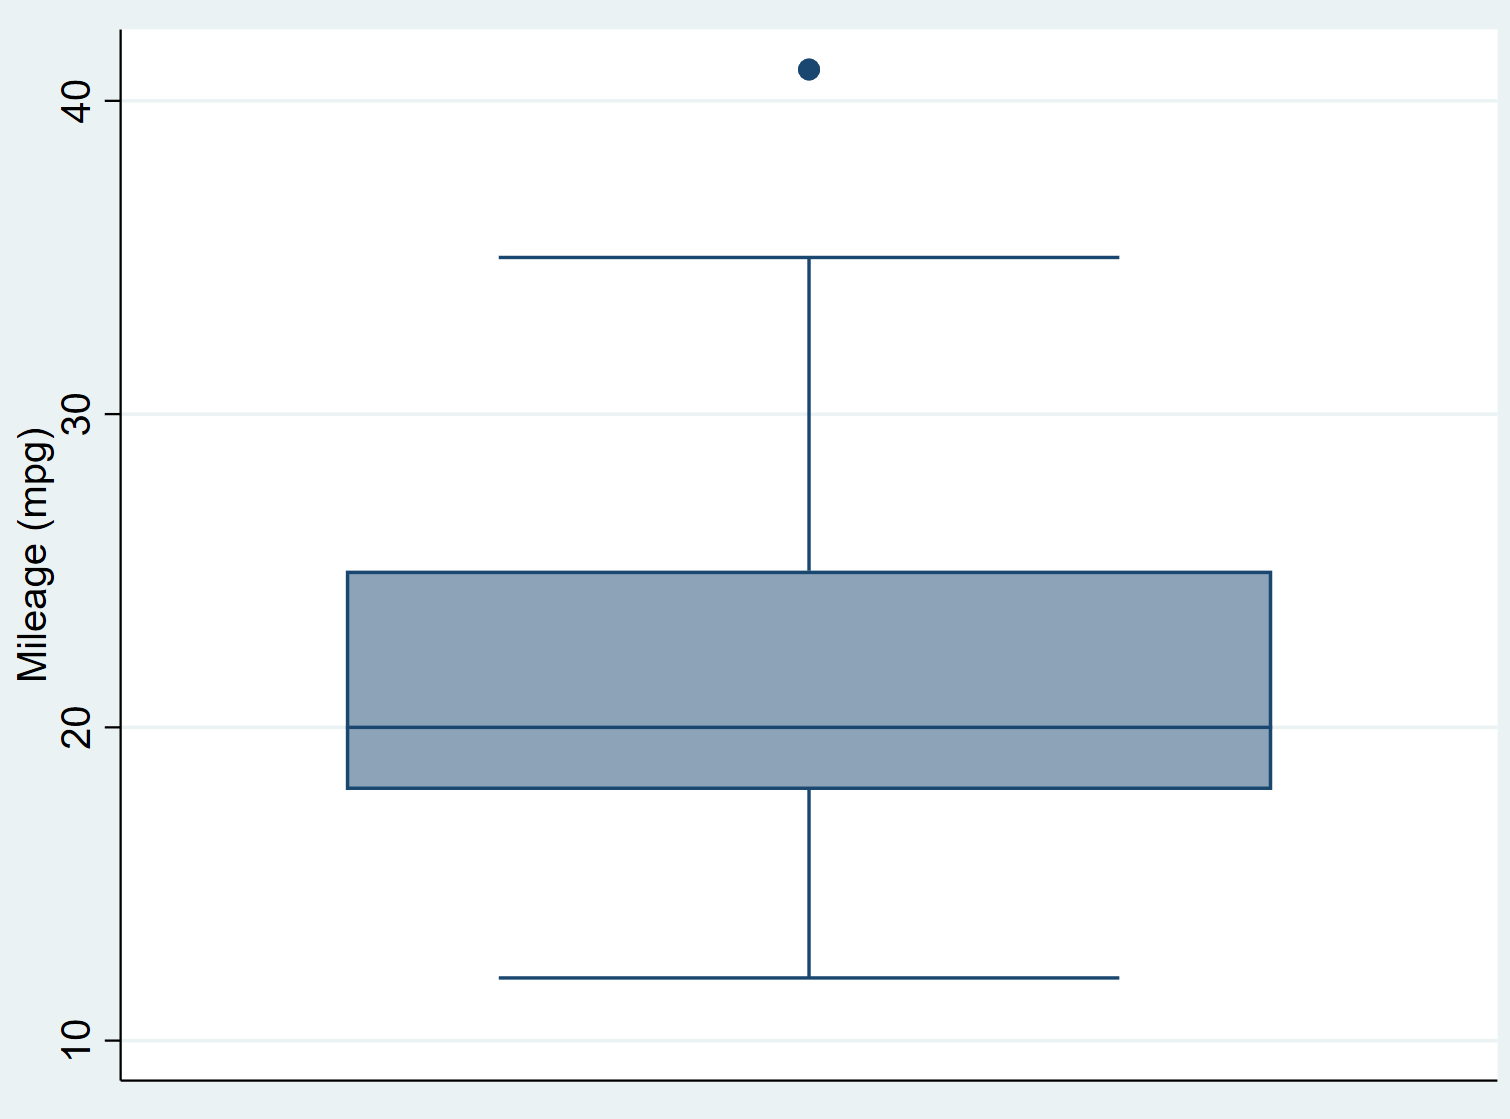 Box plot in Stata